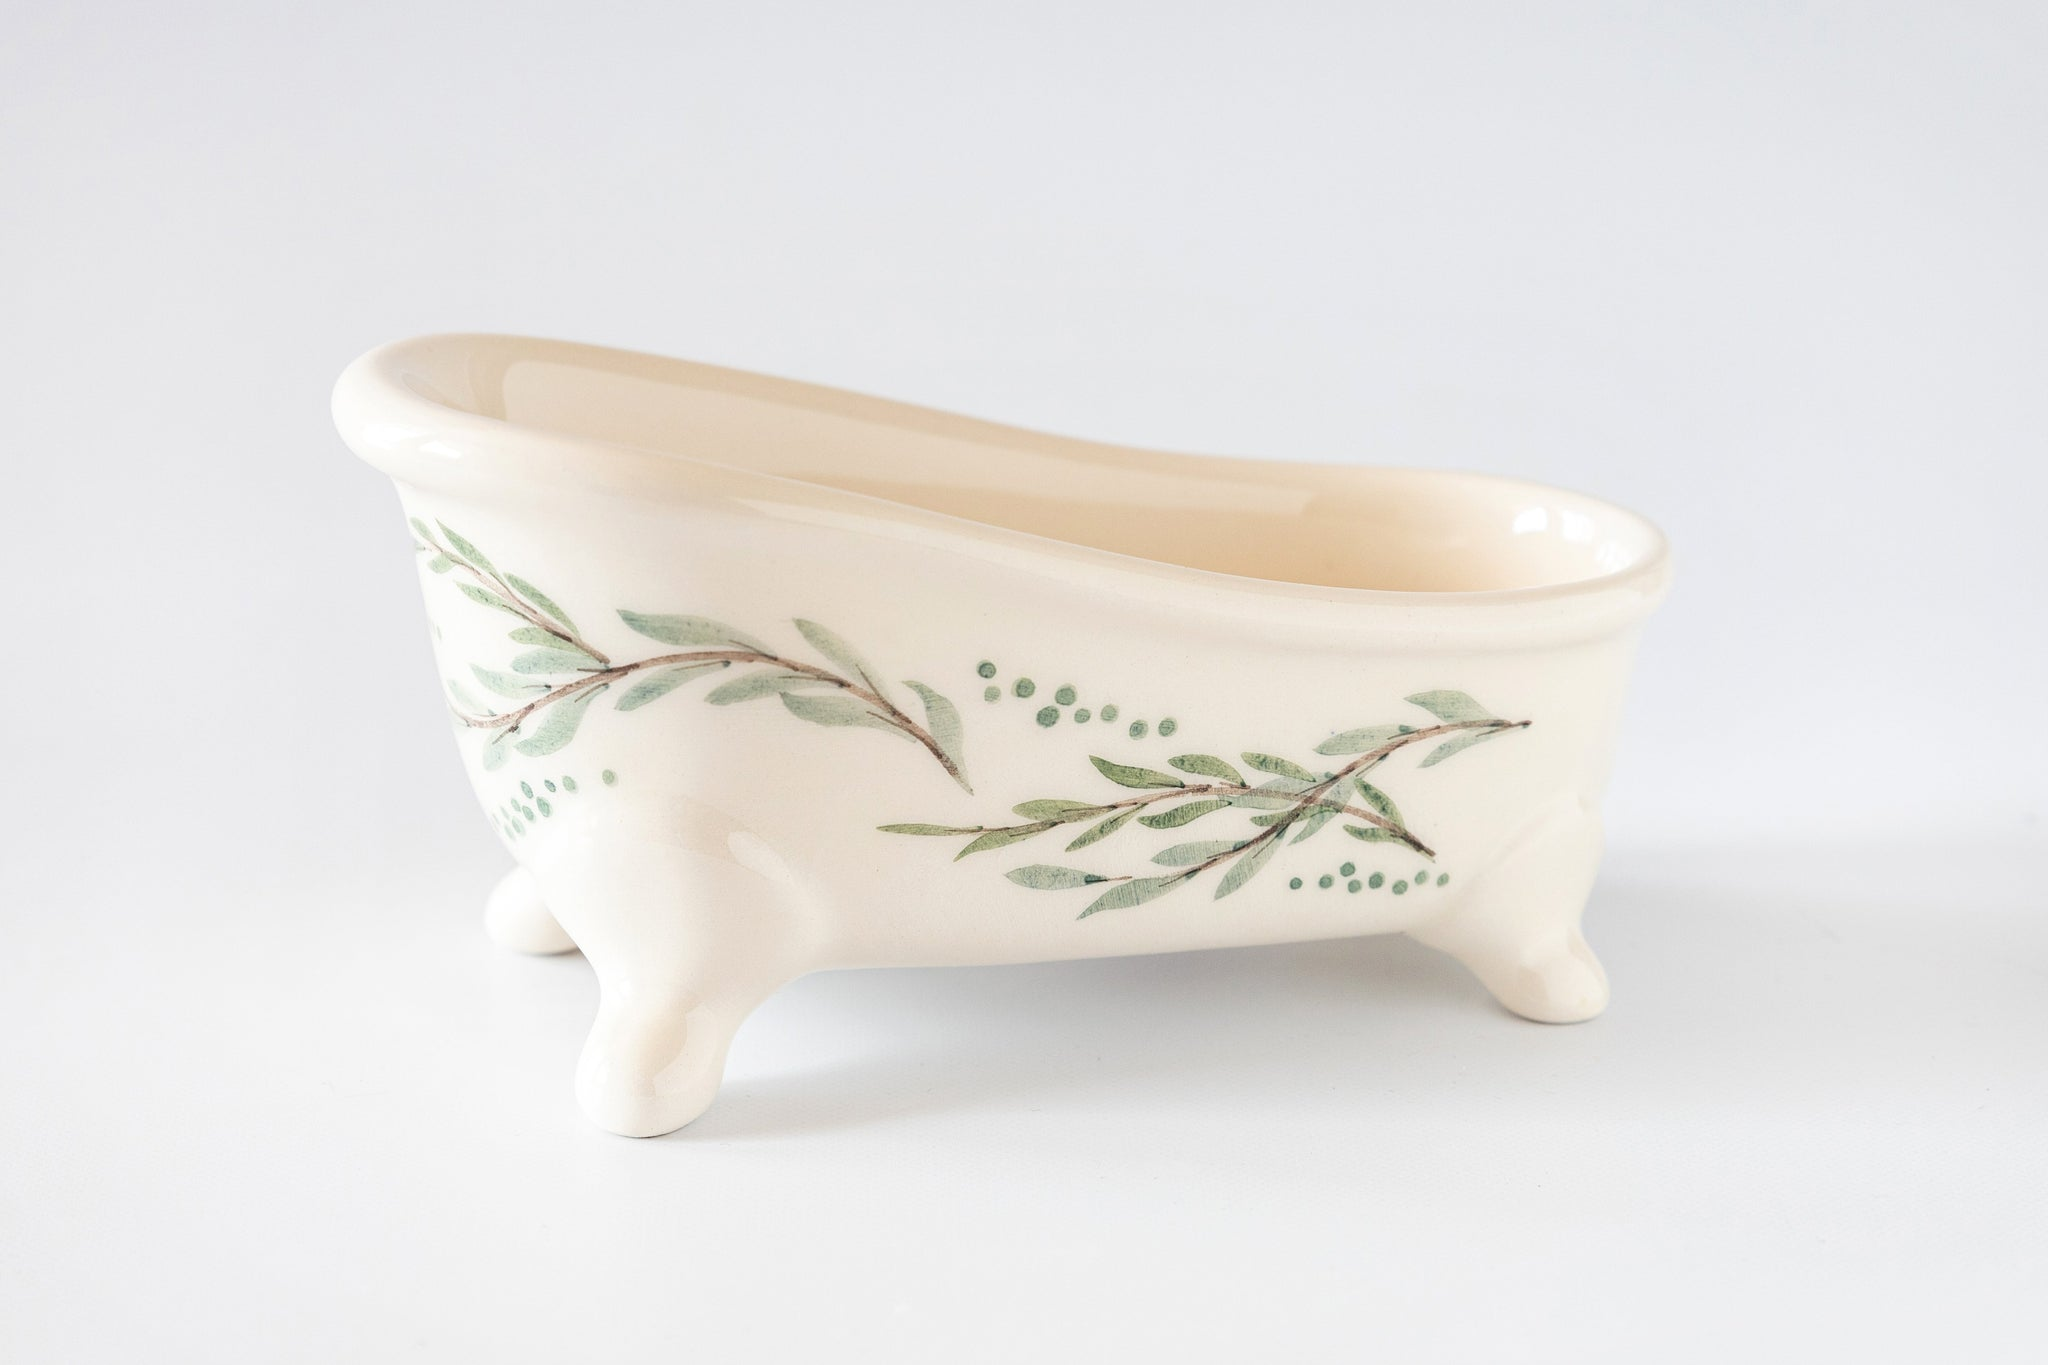 Soap Holder Bathtub Spirit of Water